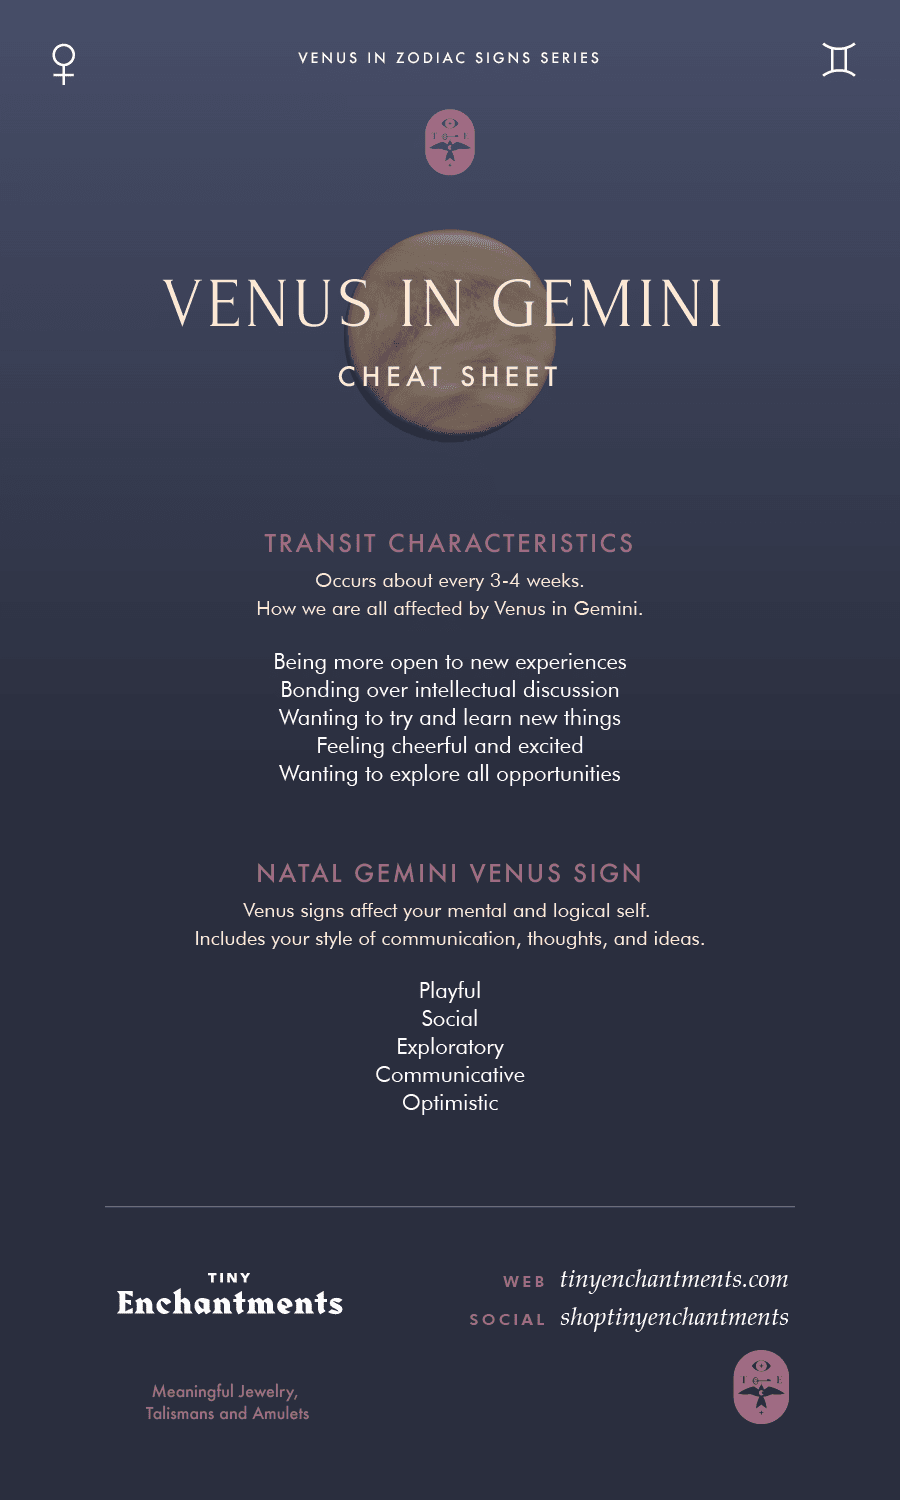 Venus in Gemini Transit / Gemini Venus Sign Personality Meanings Infographic